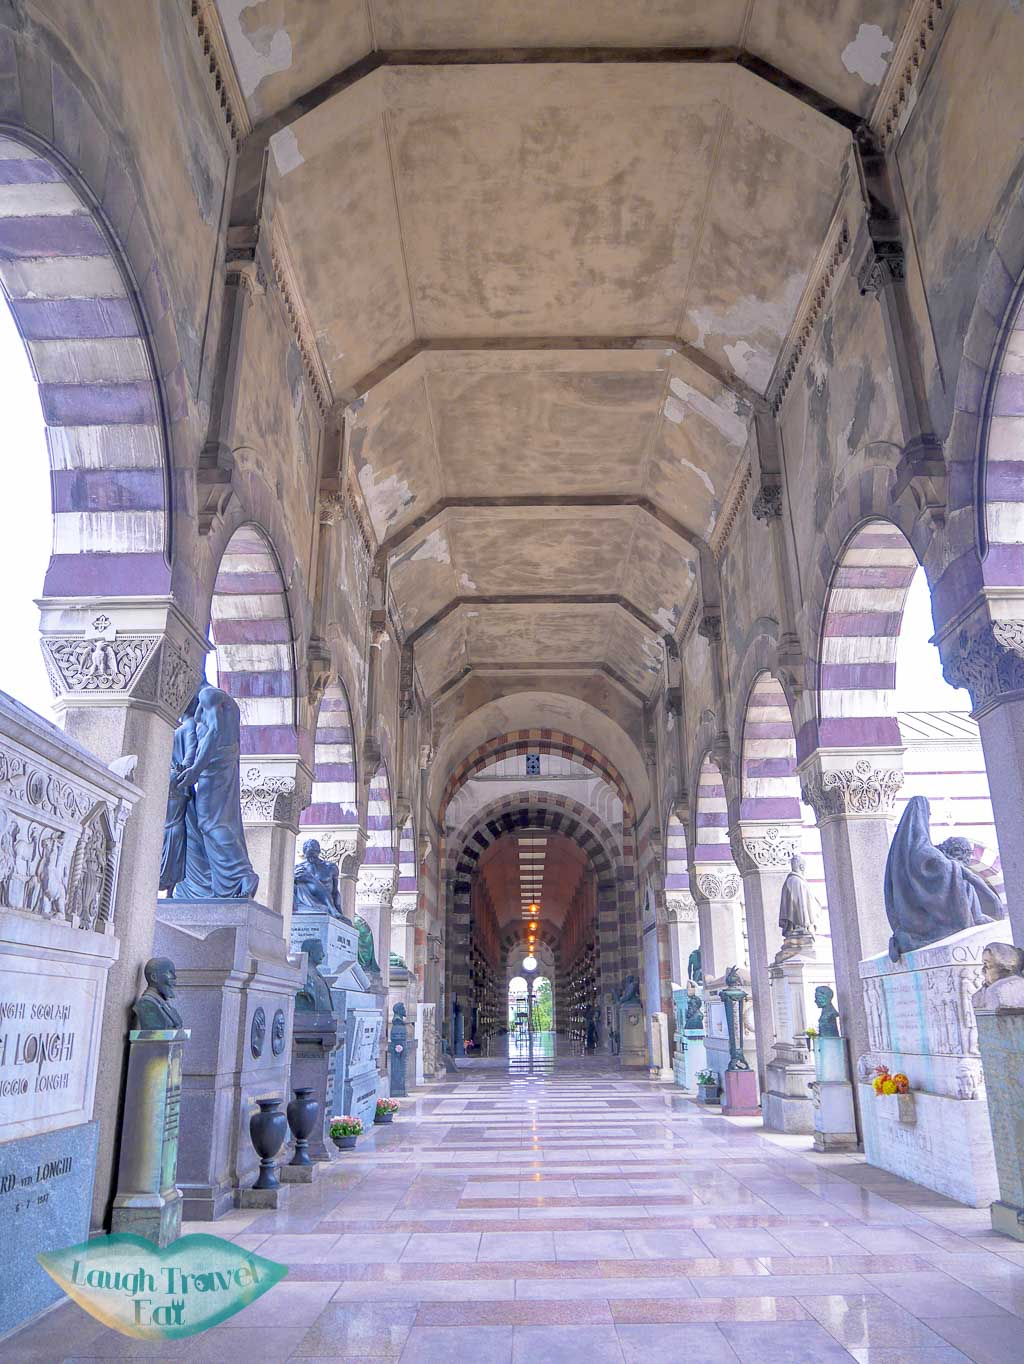 One of the galleries-corridor of Monumental Cemetery (Cimitero Monumentale), Milan, Italy - Laugh Travel Eat